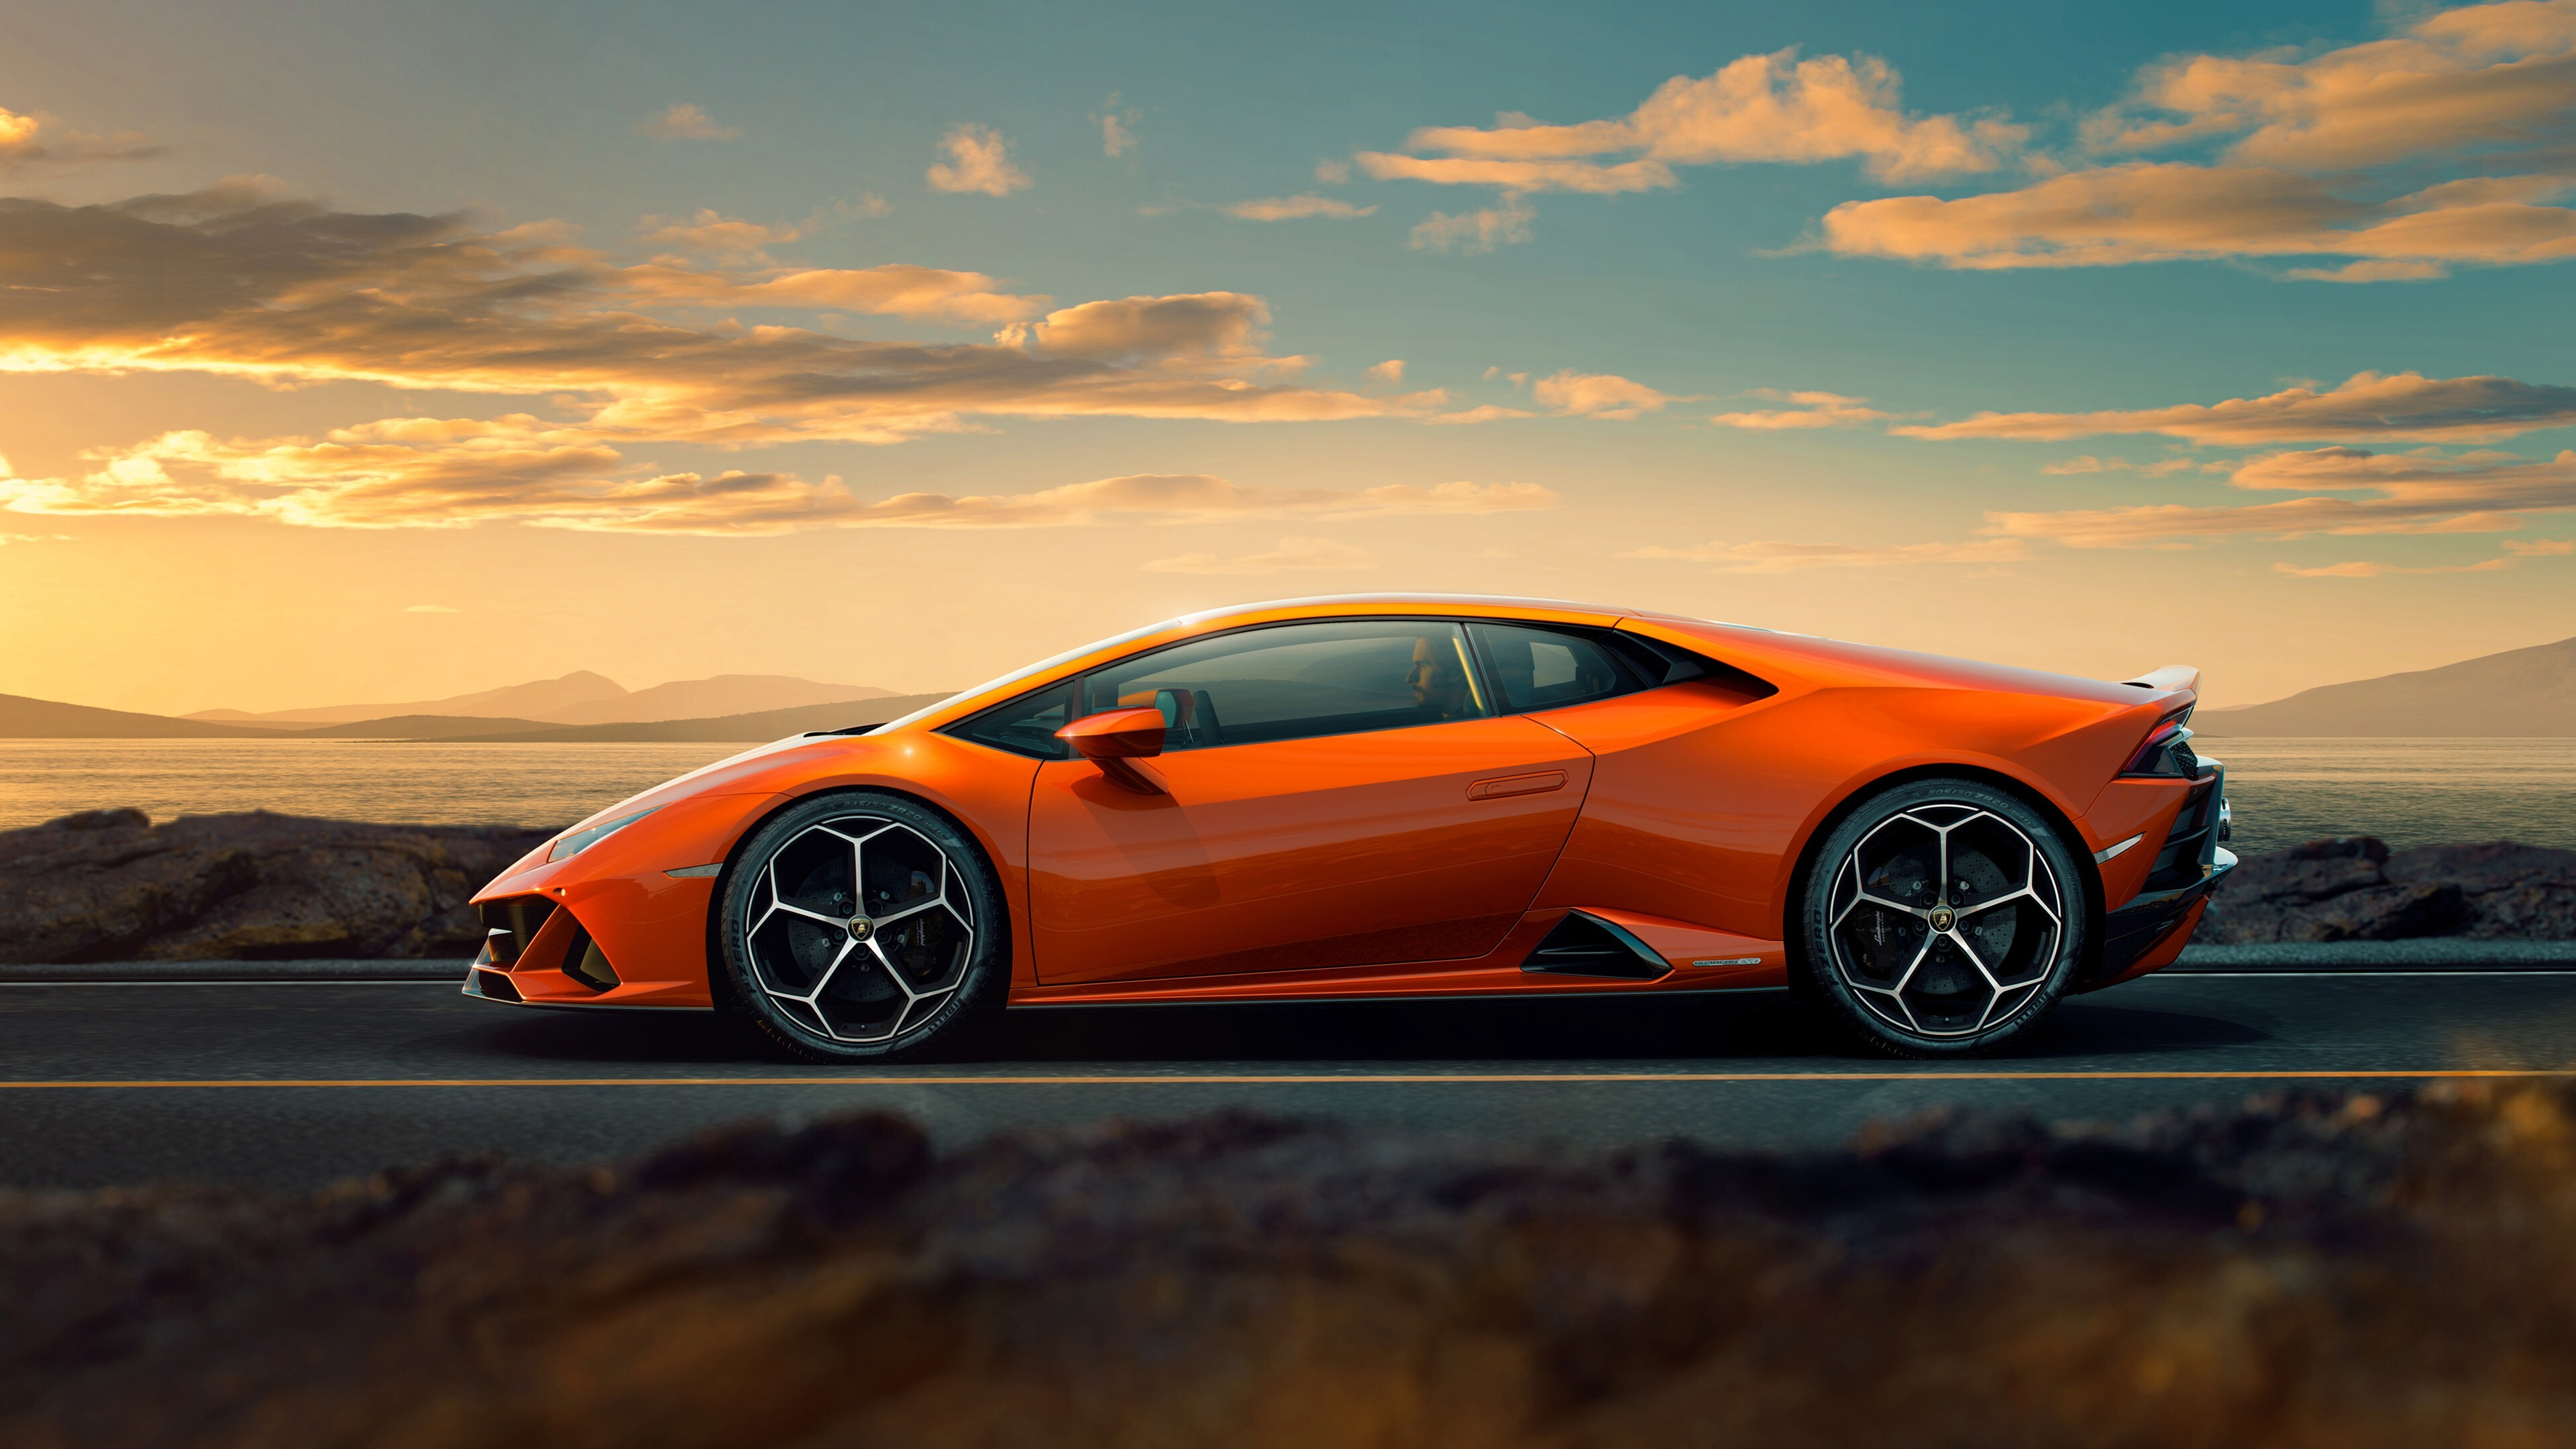 4K Photo Of 2019 Lamborghini Huracan EVO Car